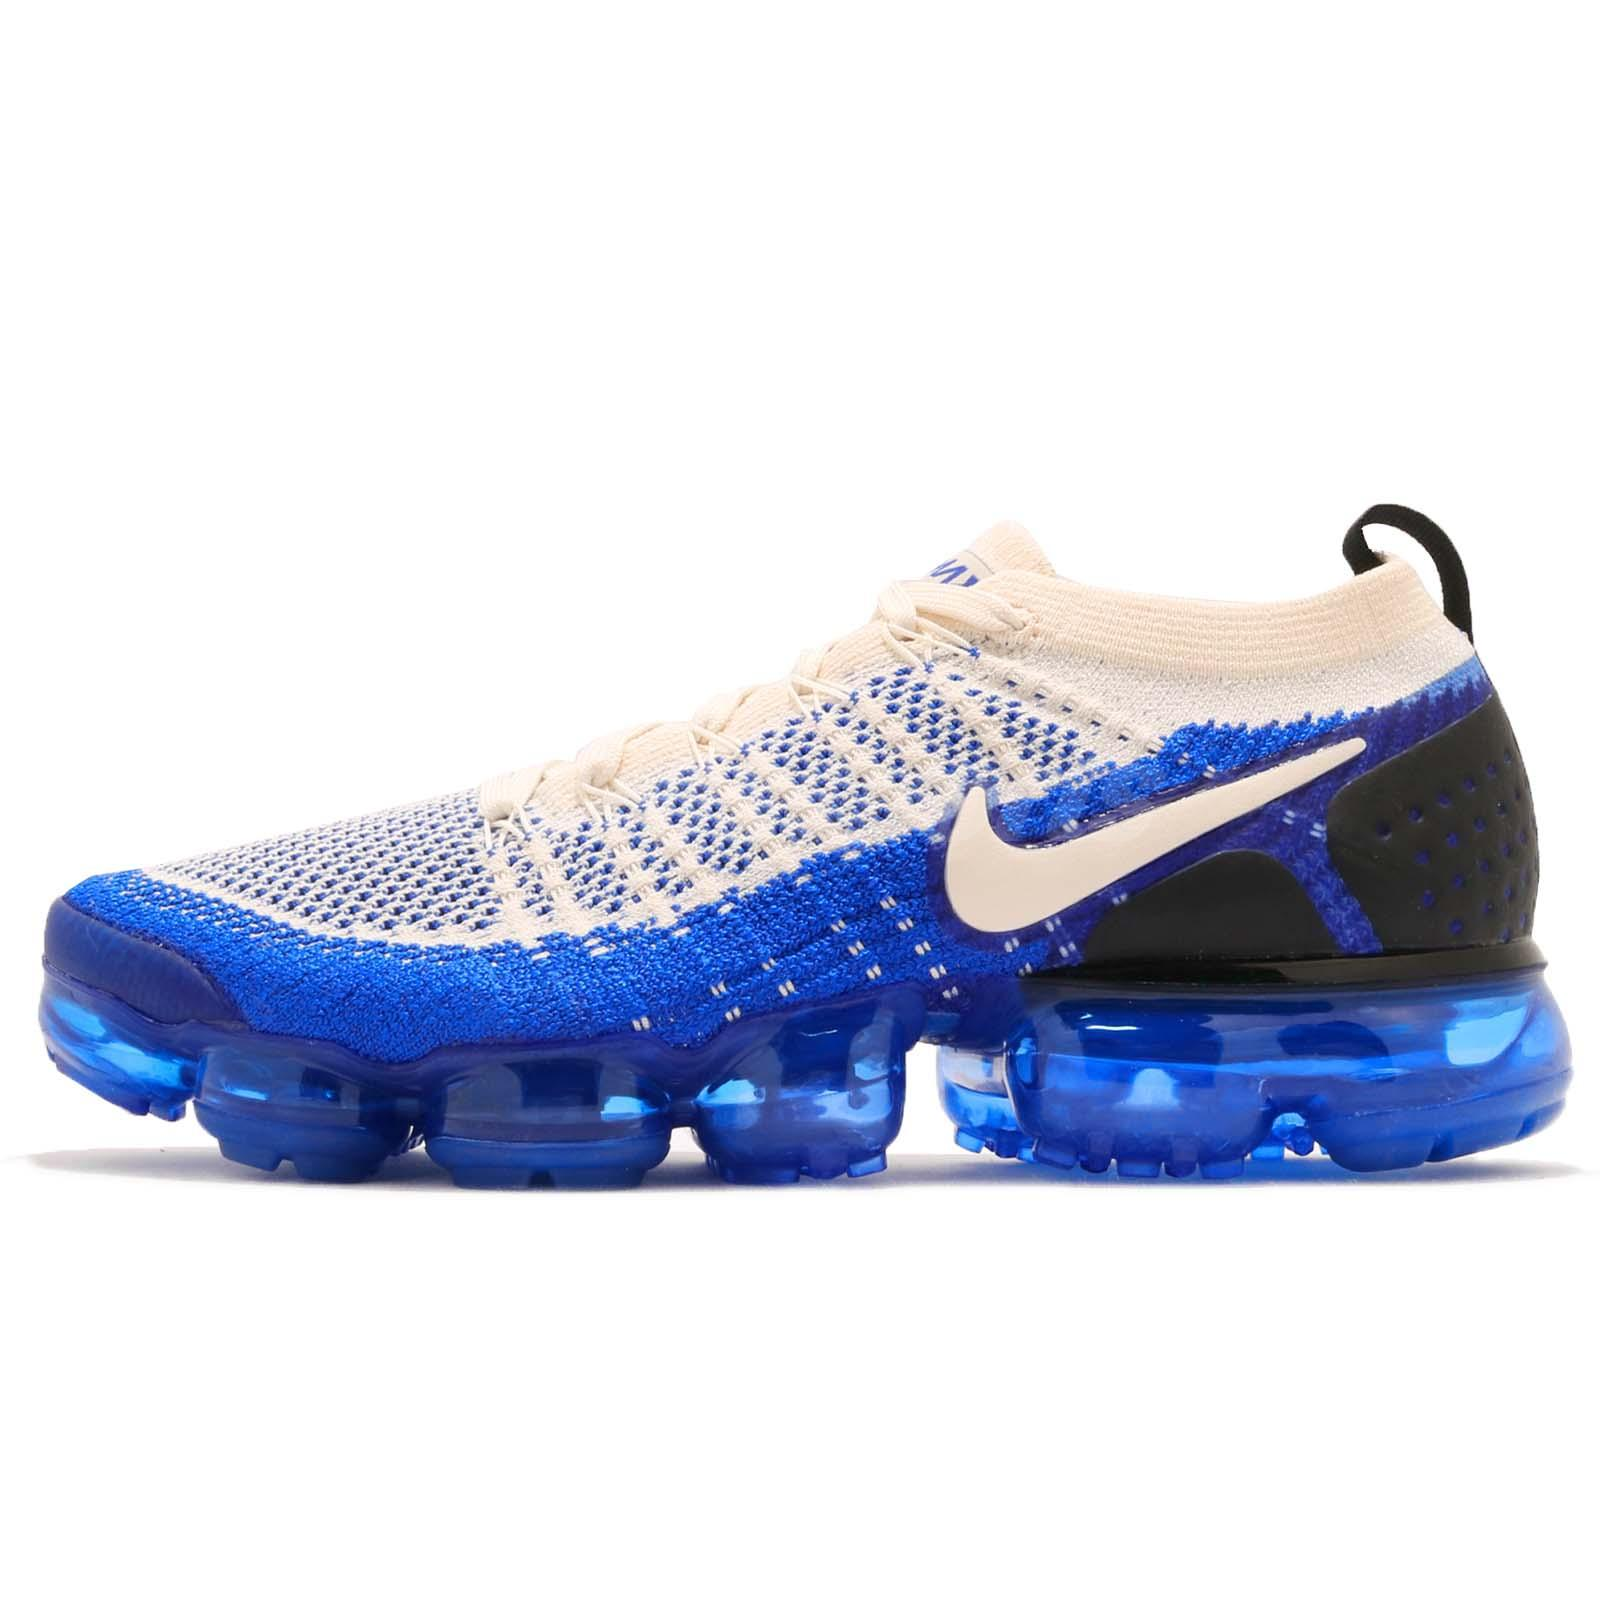 Nike Air Vapormax Flyknit 2 Light Cream Blue Mens Running Shoes Max 942842- 204 b9419fe4d